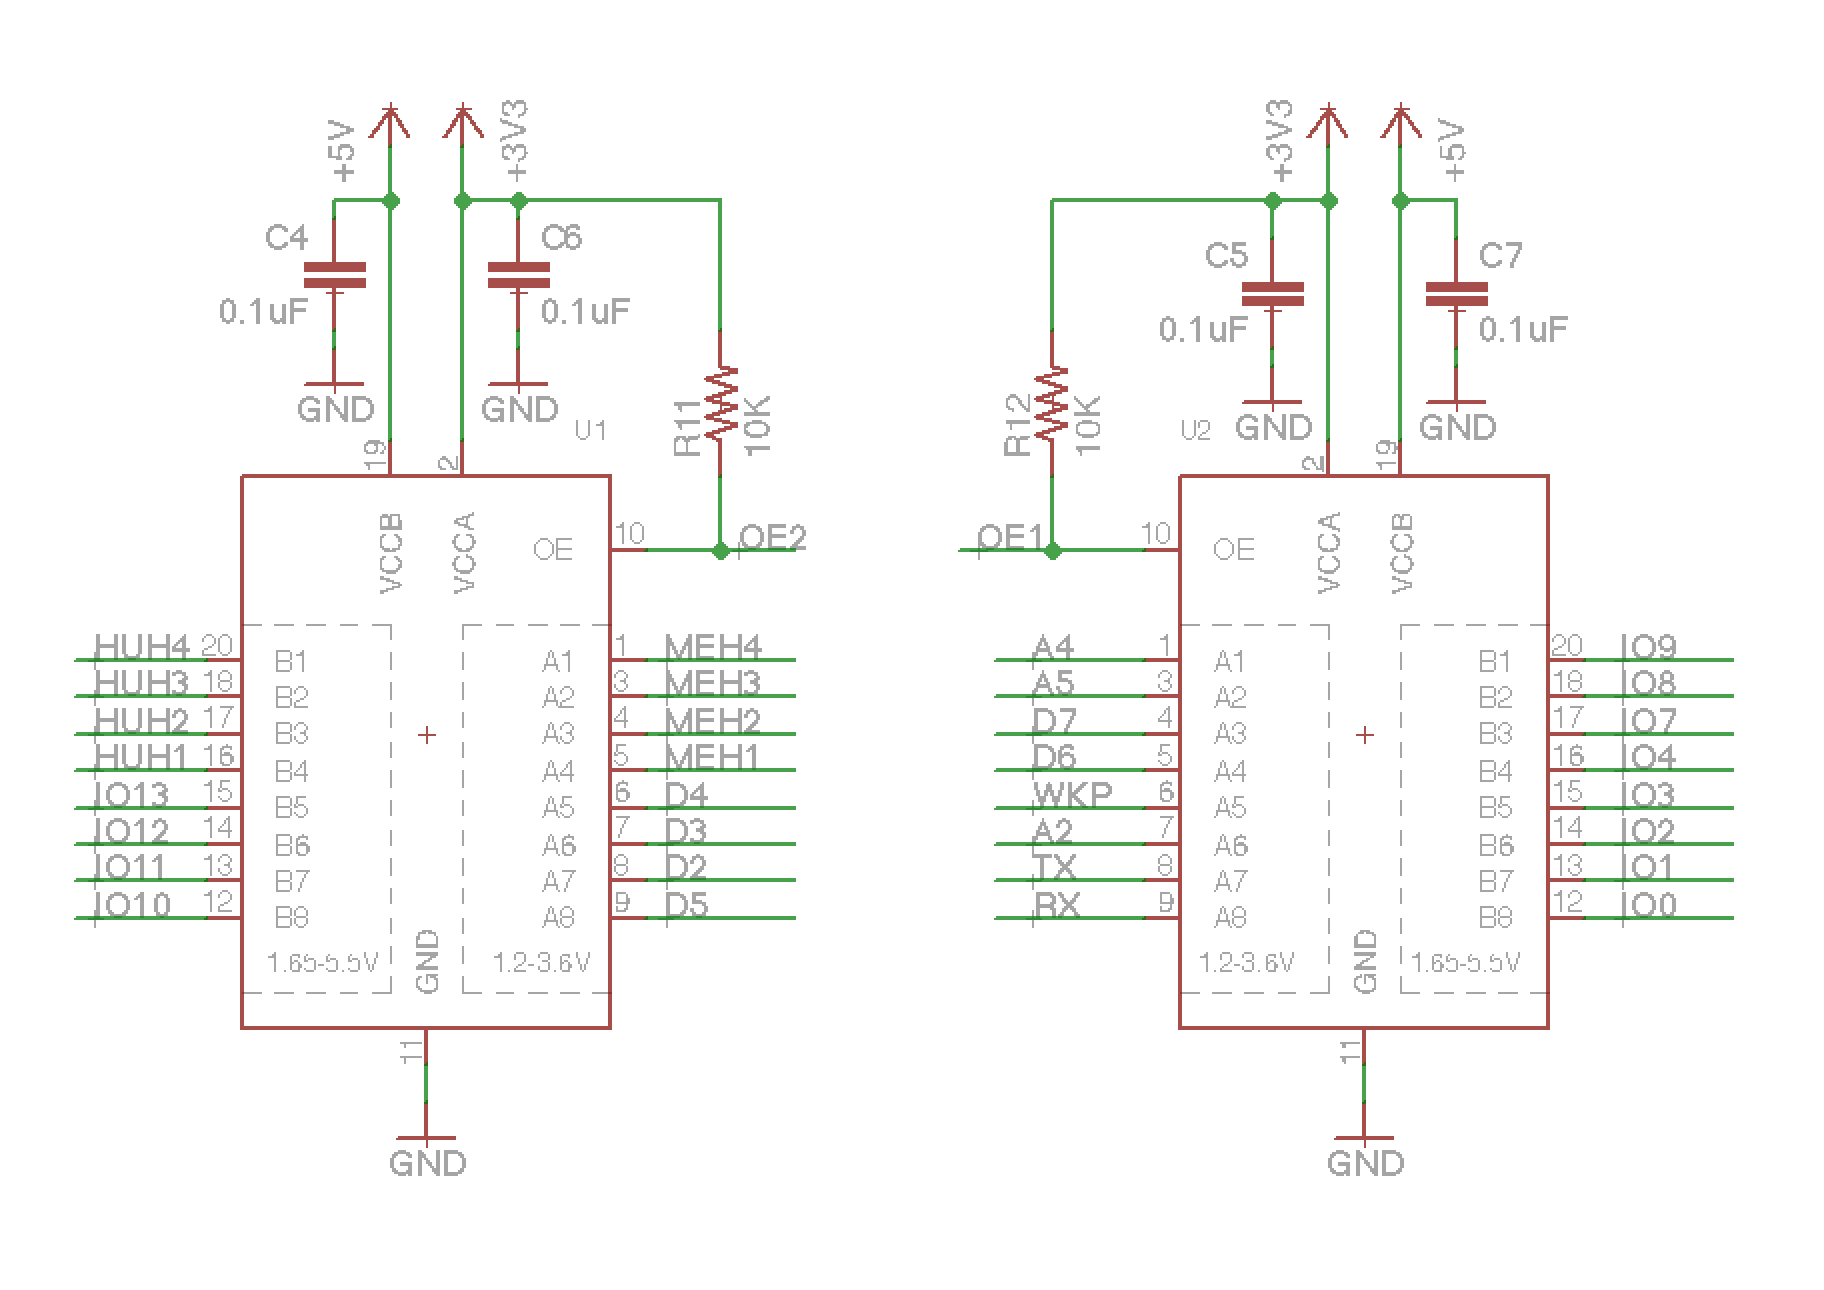 Particle Datasheets Legacy Accessories Leds Temperature Indicator Circuit Diagram Shield Schematic Txb0108pwr